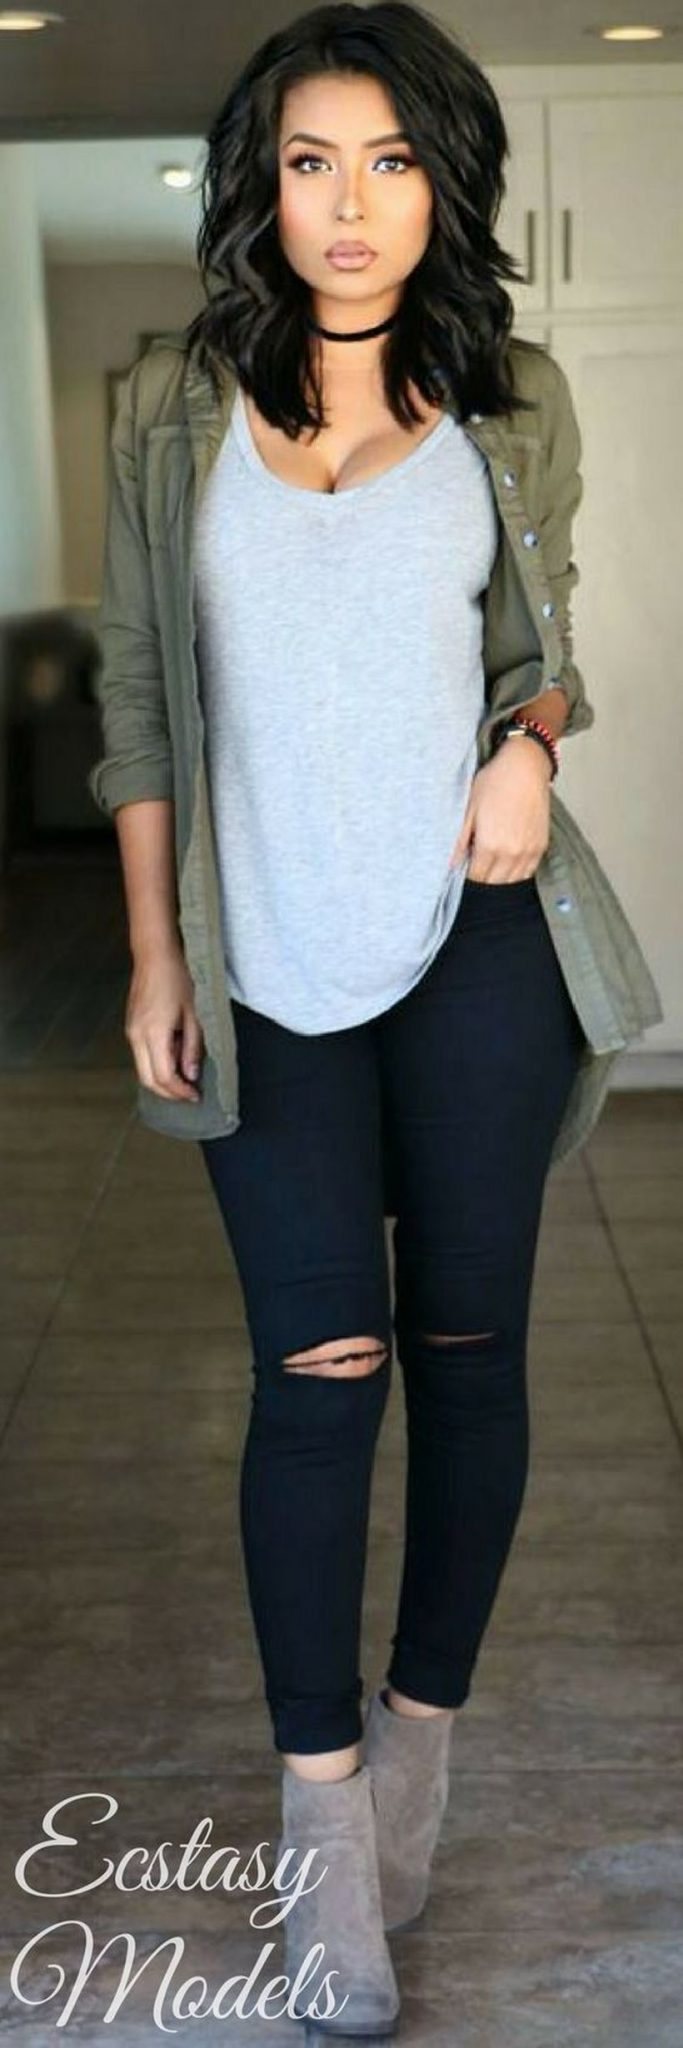 Casual fall fashions trend inspirations 2017 18 - Fashion Best